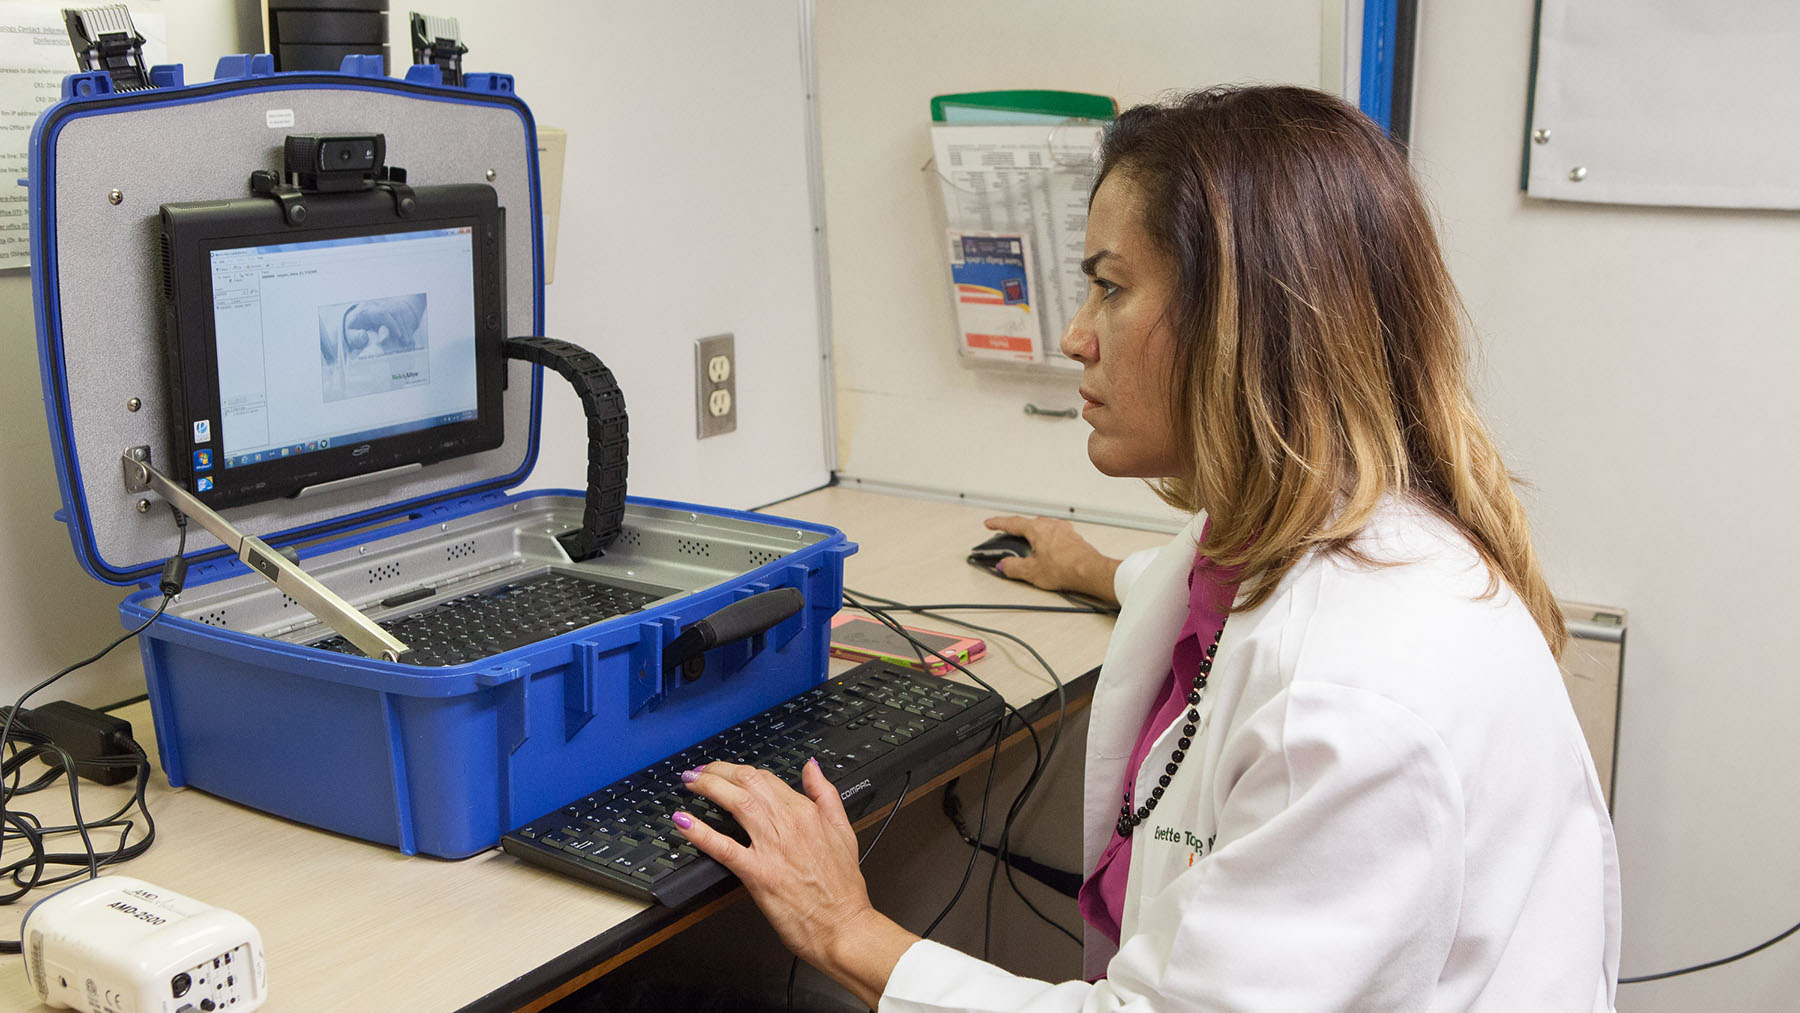 A provider at Florida International University's mobile clinic uses MAVEN Project telehealth services on a computer. (Photo courtesy of the MAVEN Project)